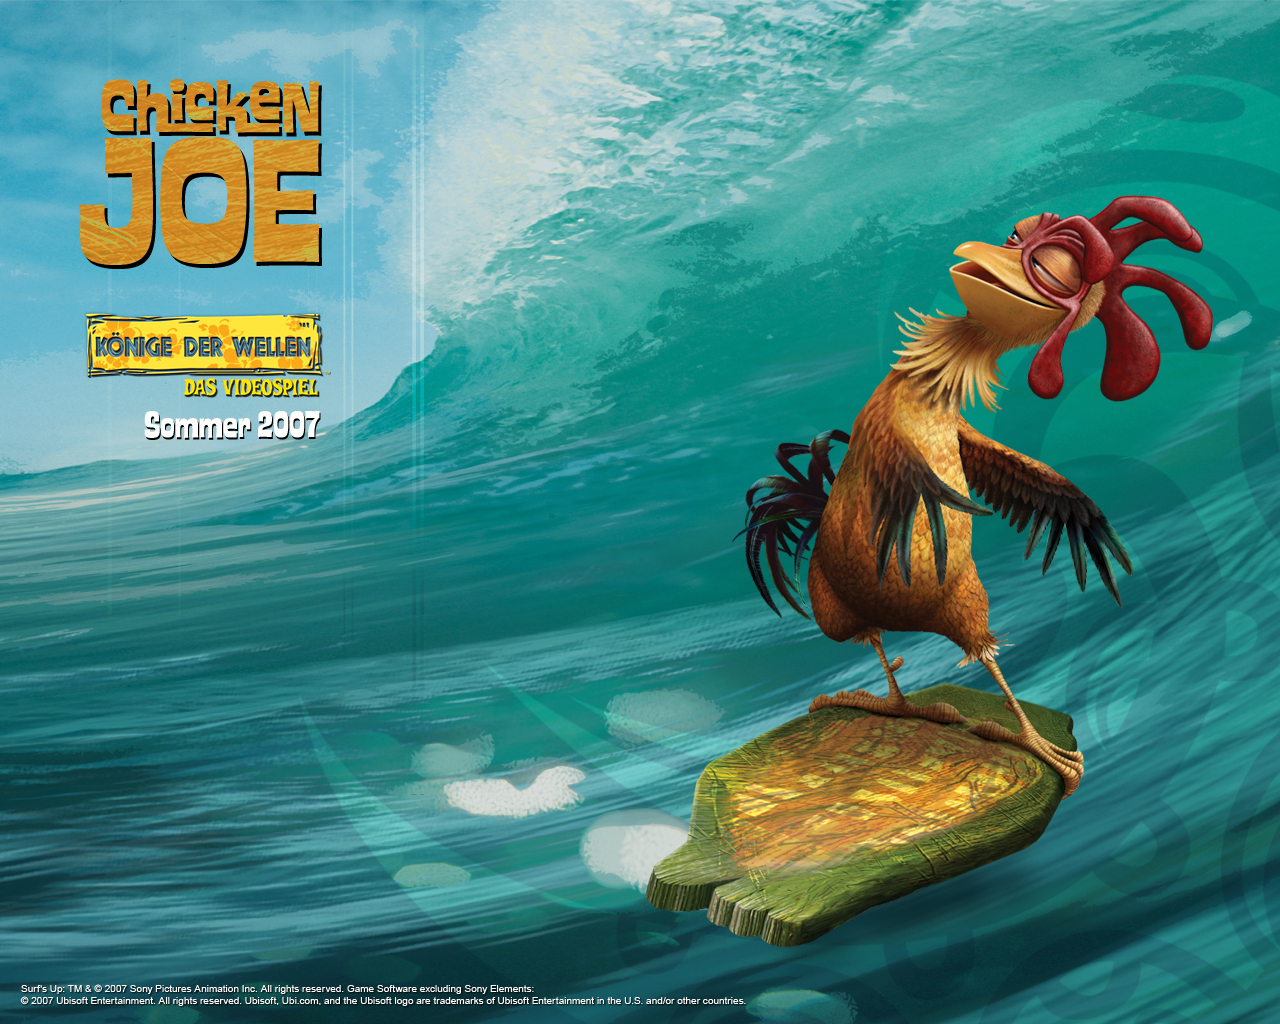 chicken-joe surfs up